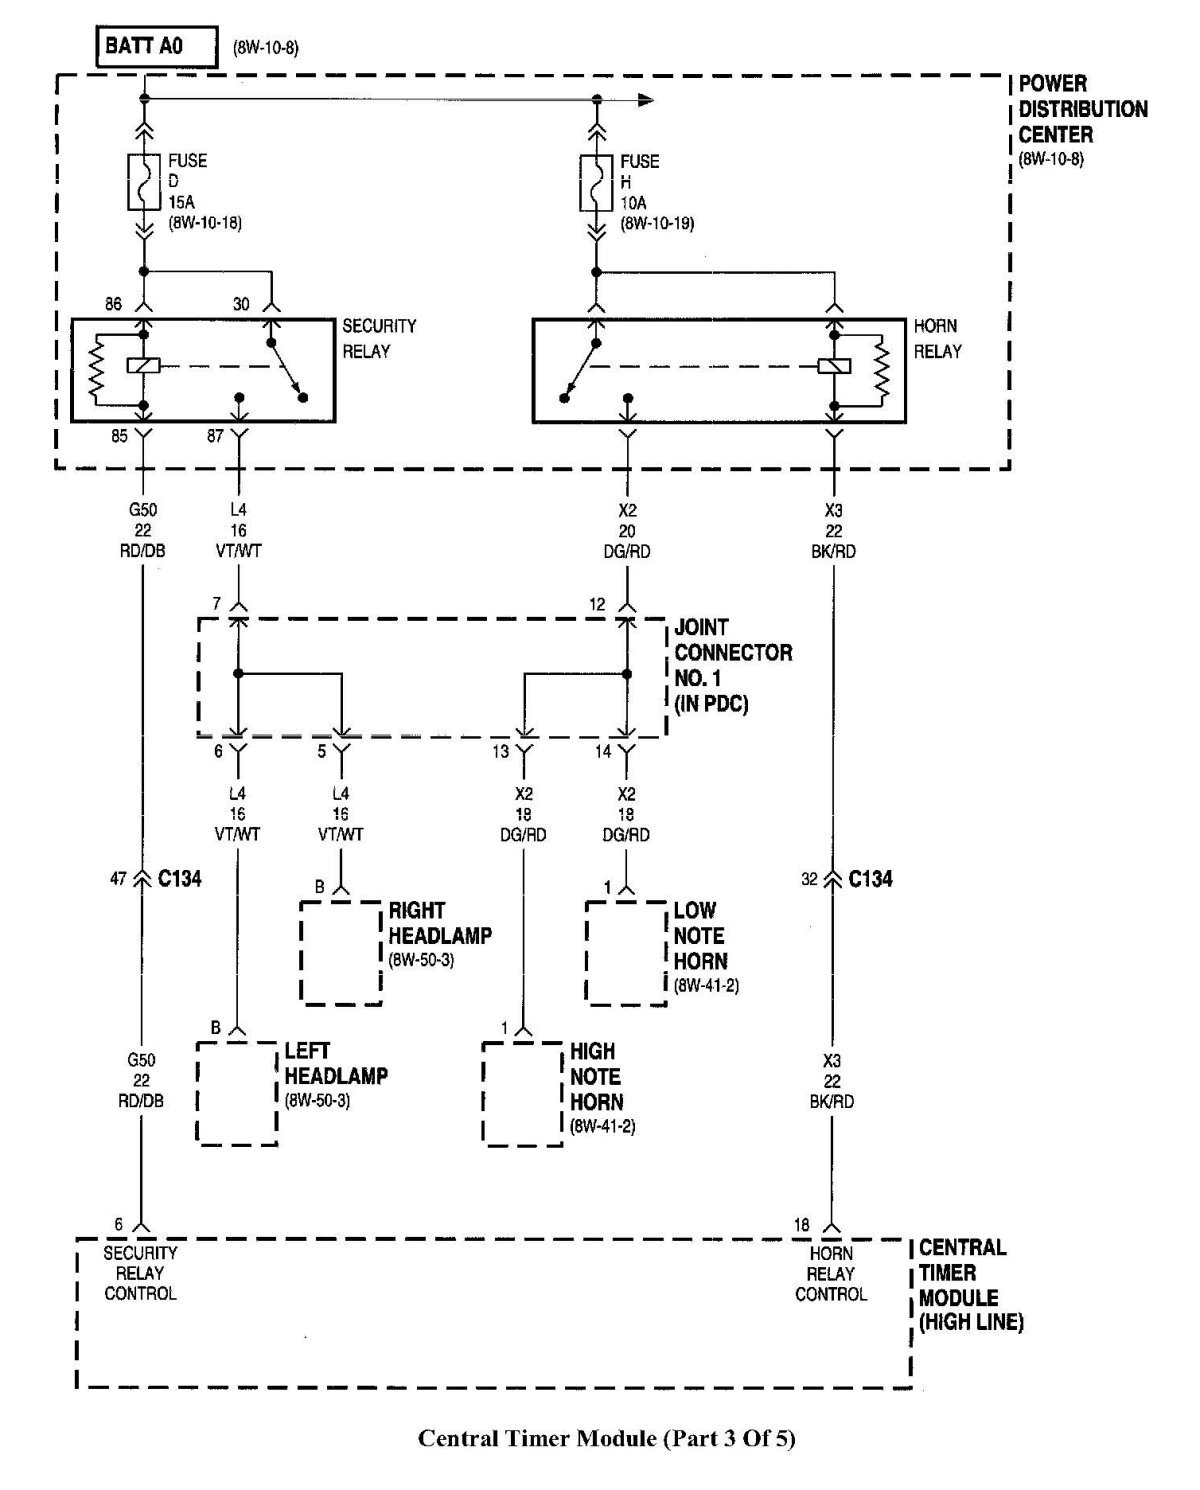 2005 Dodge Ram Wiring Harness - Wiring Diagram Data - 2005 Dodge Ram 2500 Trailer Wiring Diagram